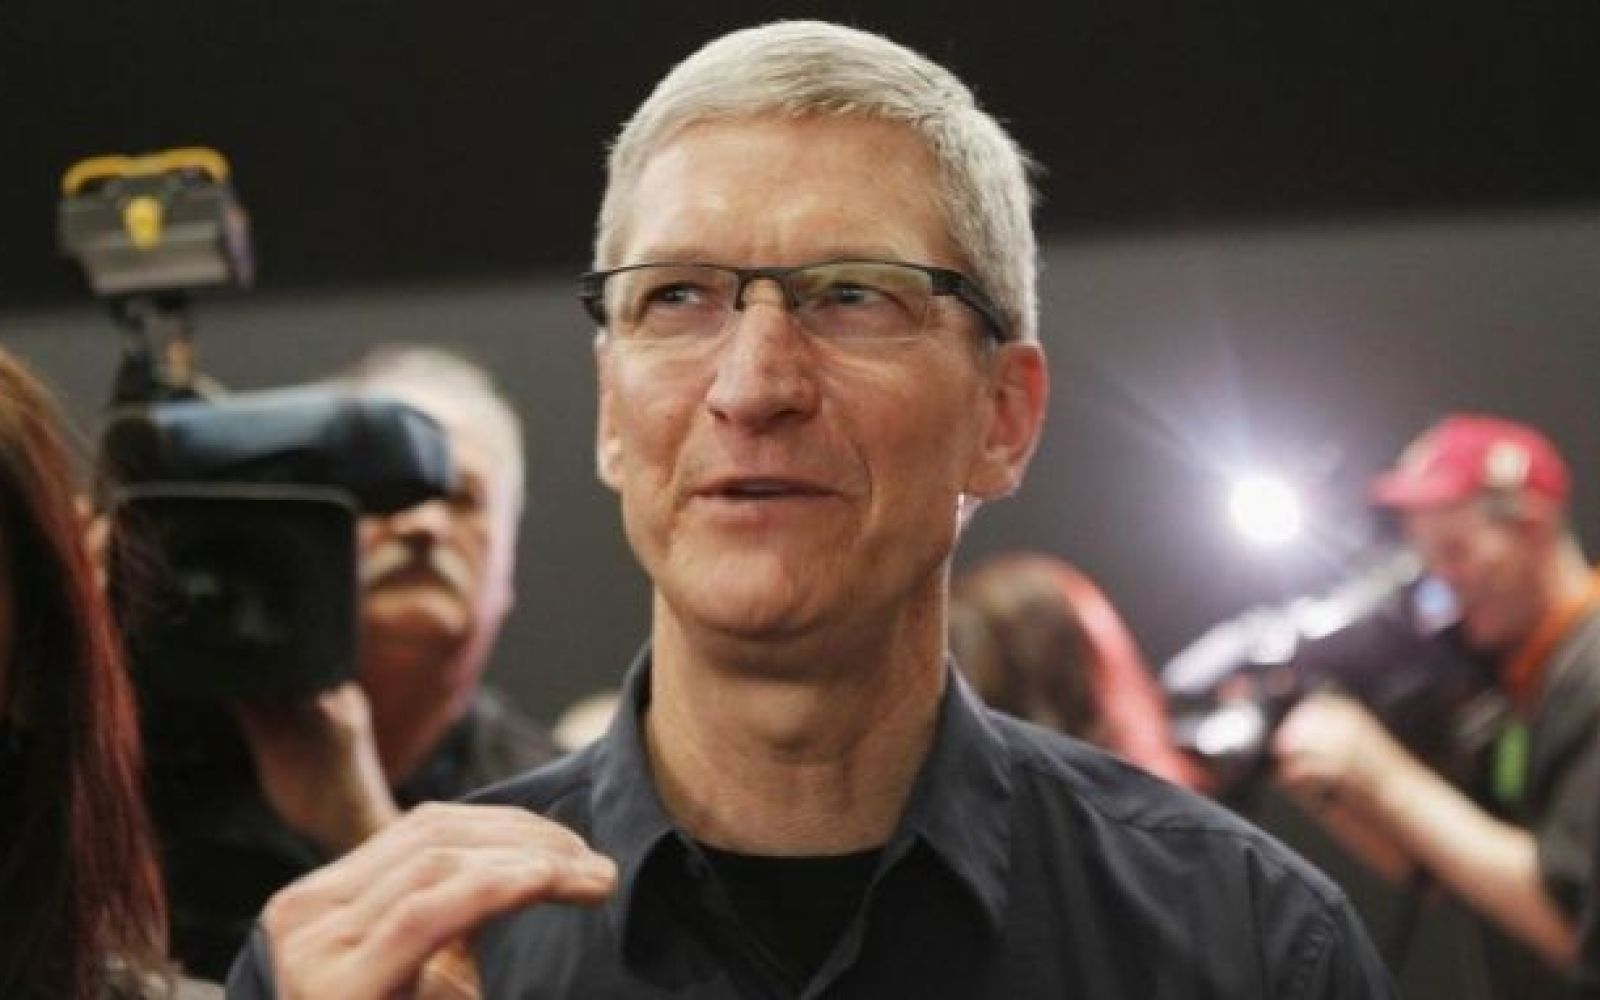 Tim Cook tops Out power list for third consecutive time, more than anyone who has come out